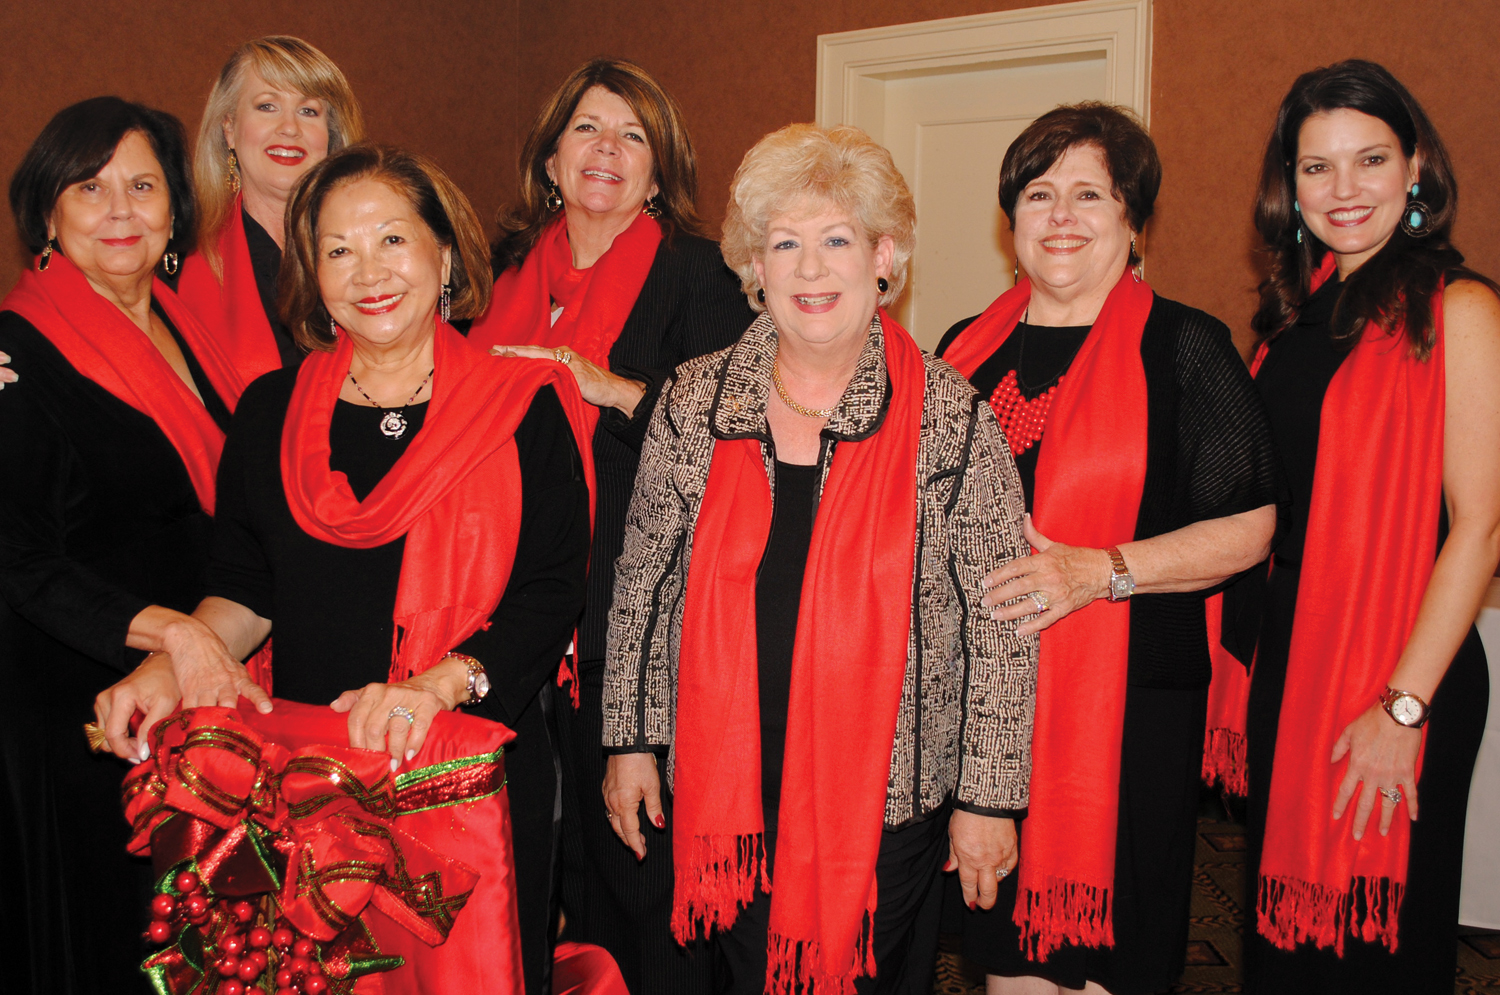 These ladies added quite a splash of color to the Just A Pretty Table Luncheon with their Christmas theme. They are, from left, Donna Rieves, Doreen Stringer, Connie Lopez, Kippy Caraway, Cassandra Brunson, Ann Wismer Landolt and Tonya Ferris.